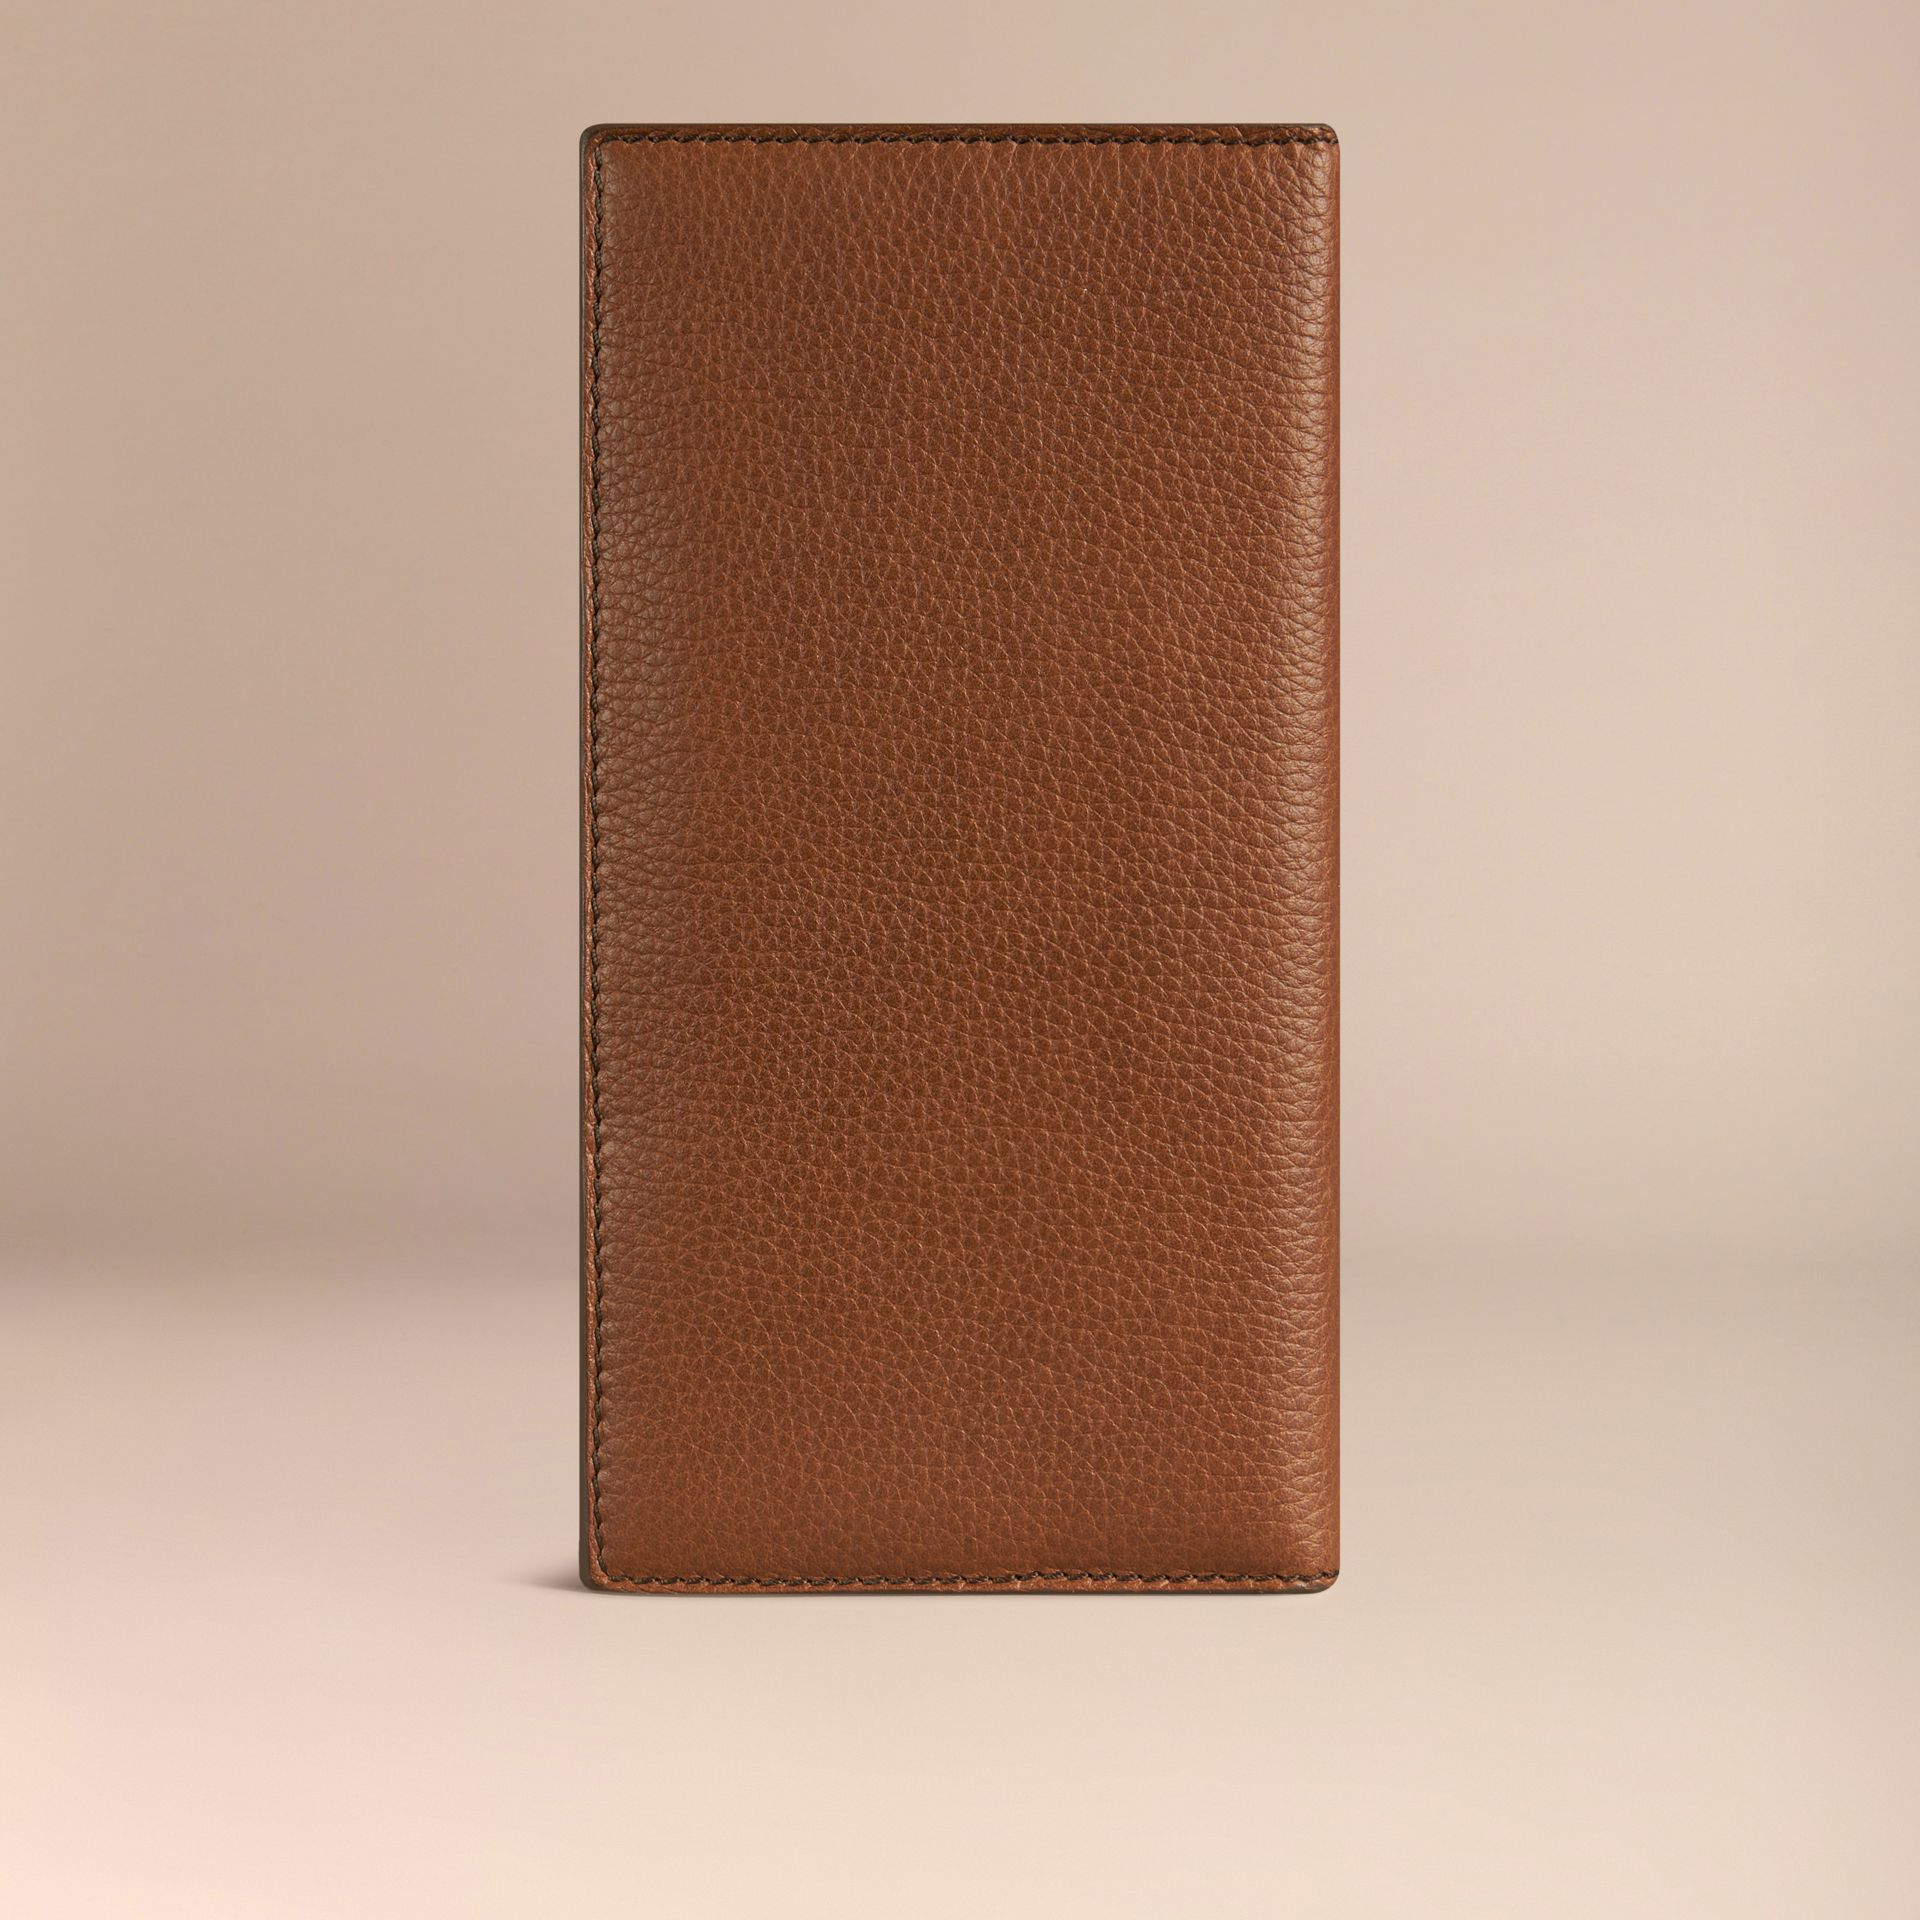 Grainy Leather Travel Card Case in Tan - gallery image 3